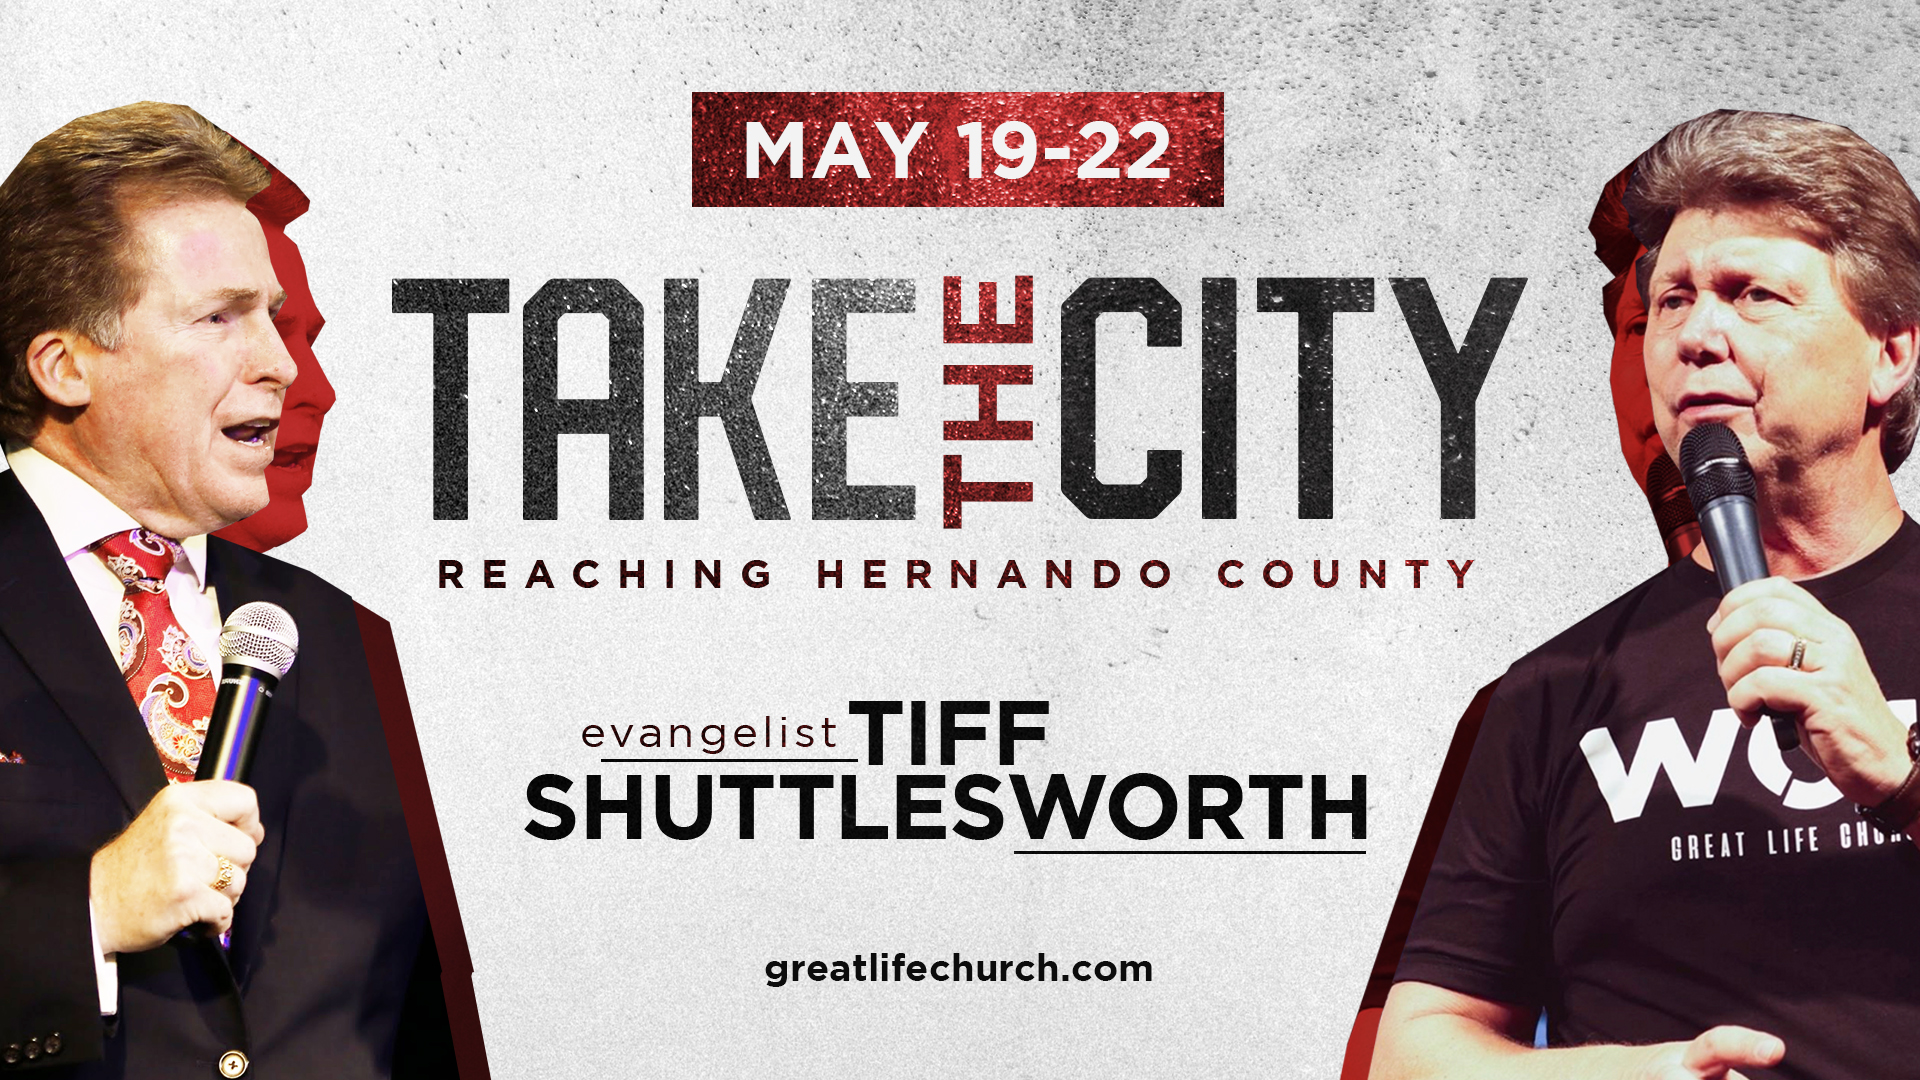 Take The City Great Life Church